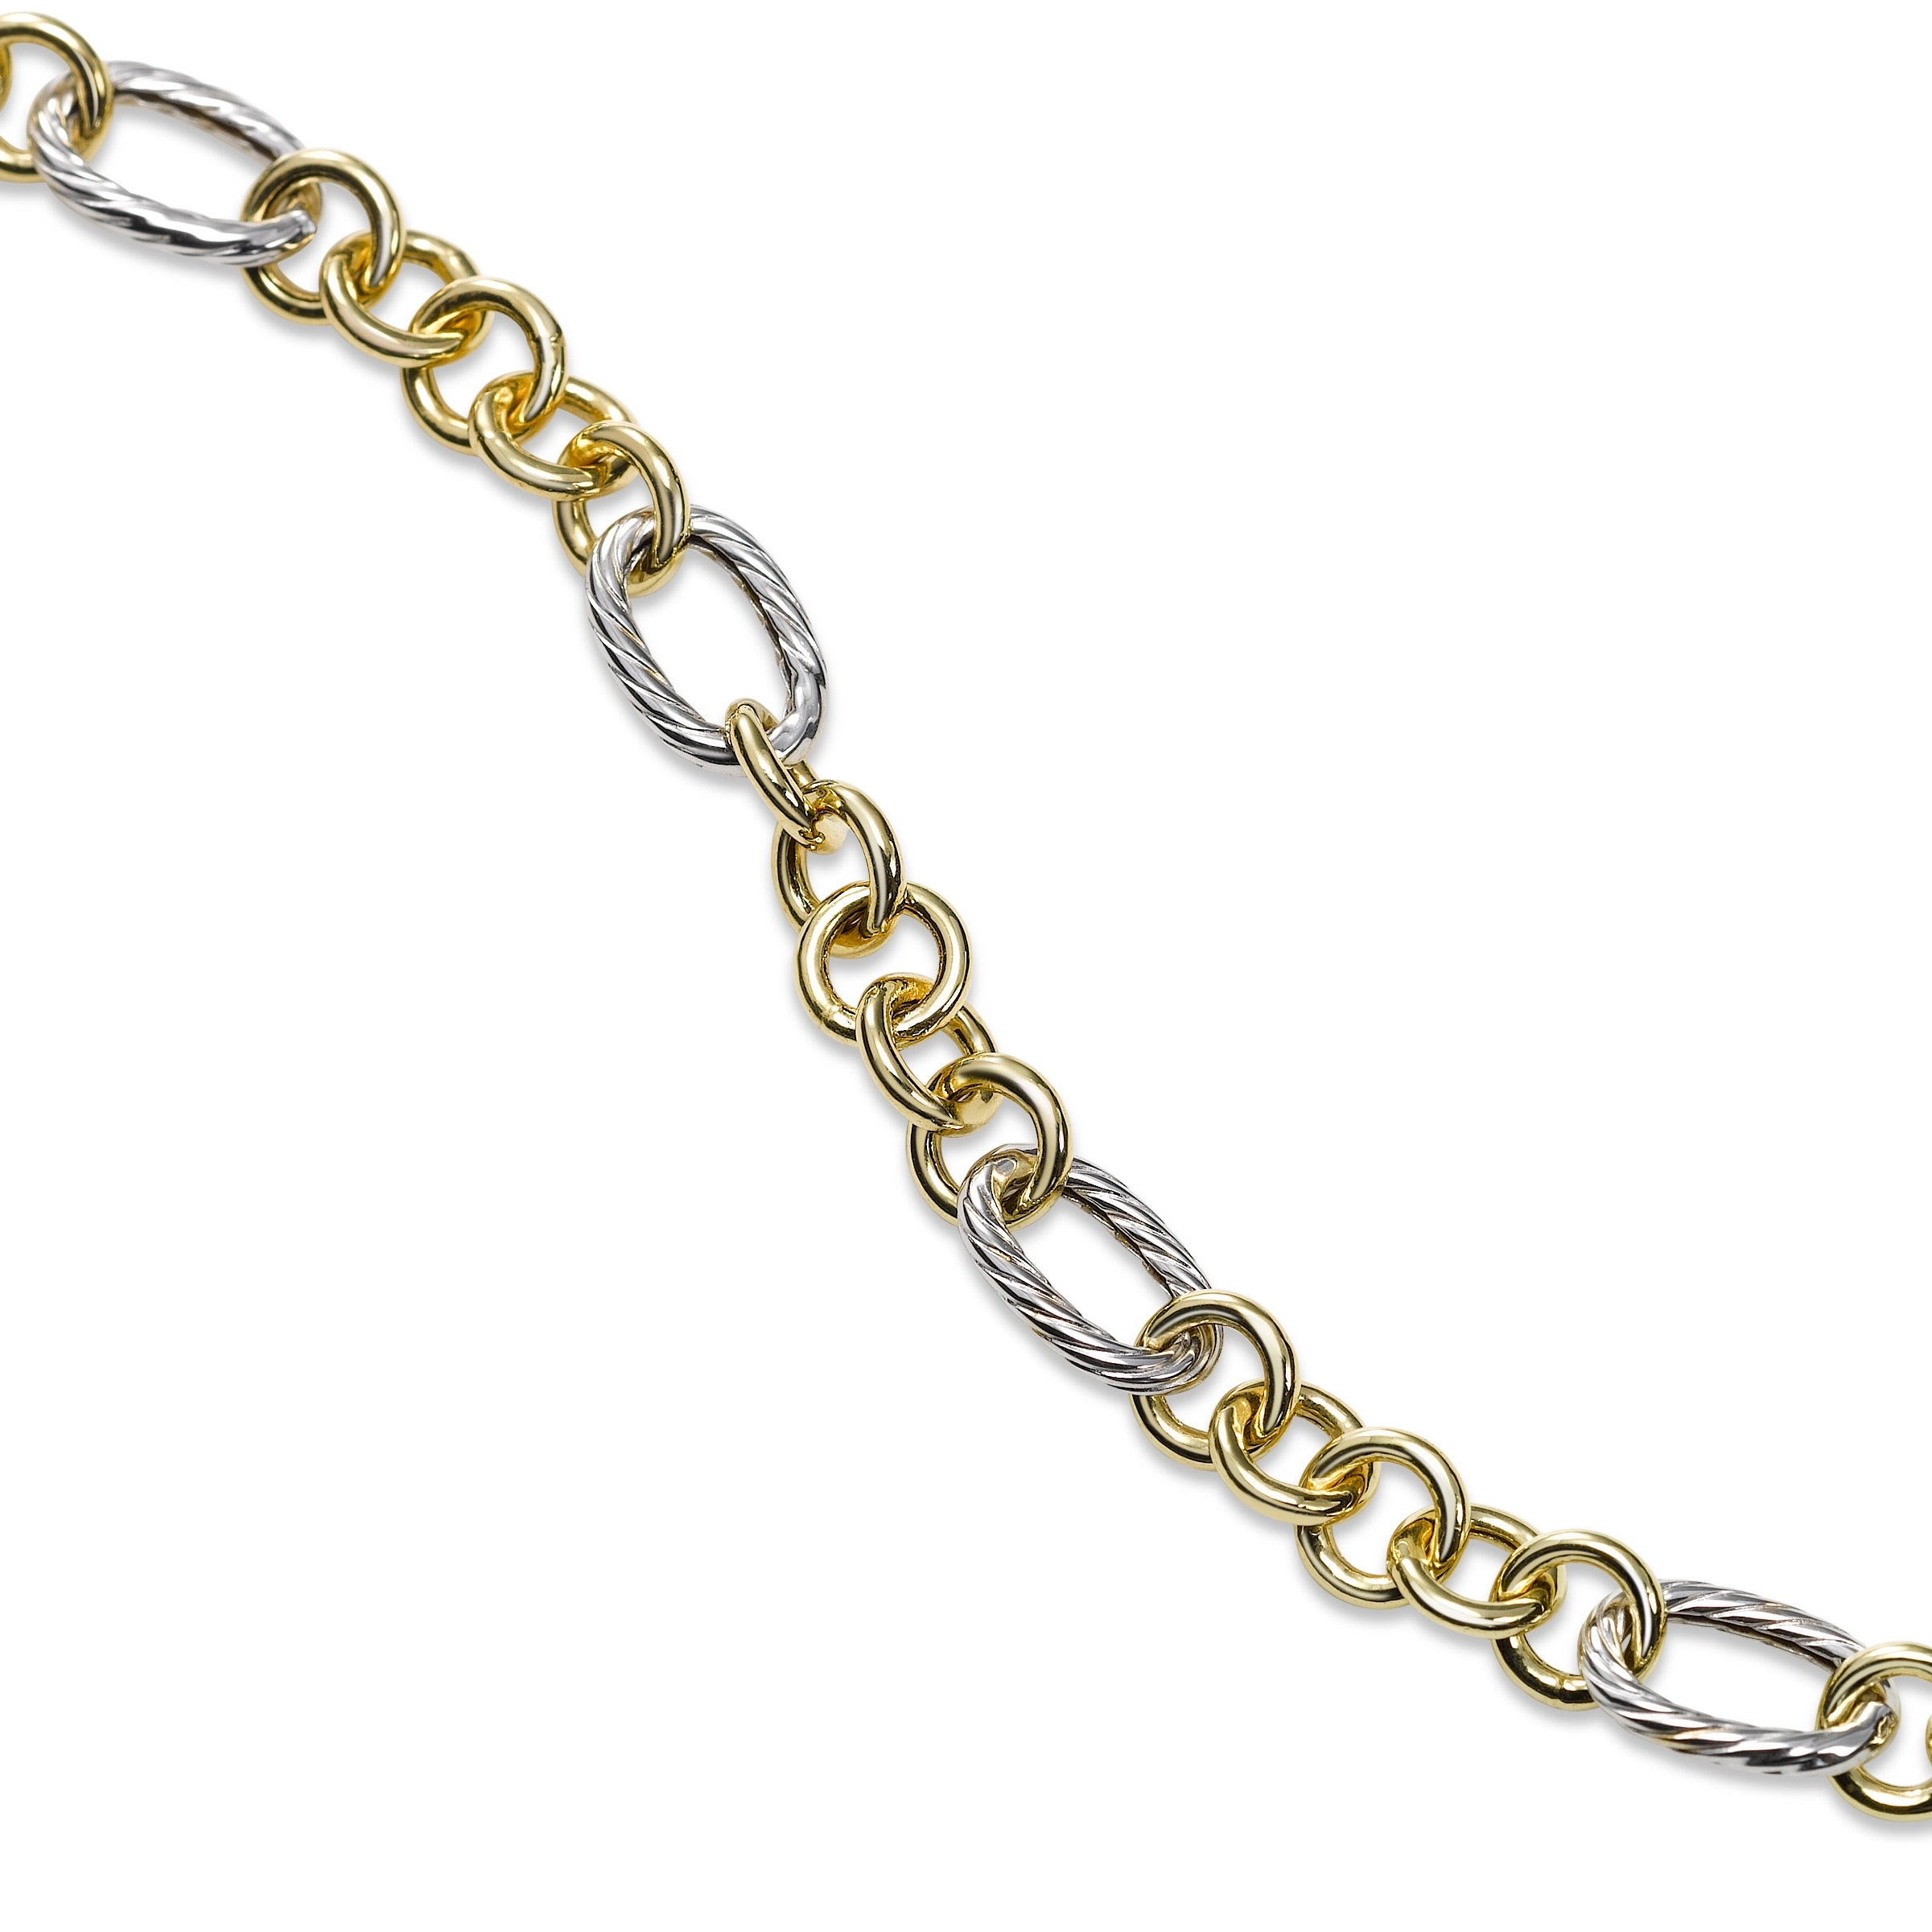 Two Tone Euro Link Bracelet, 14 Karat Gold, 7.25 inches